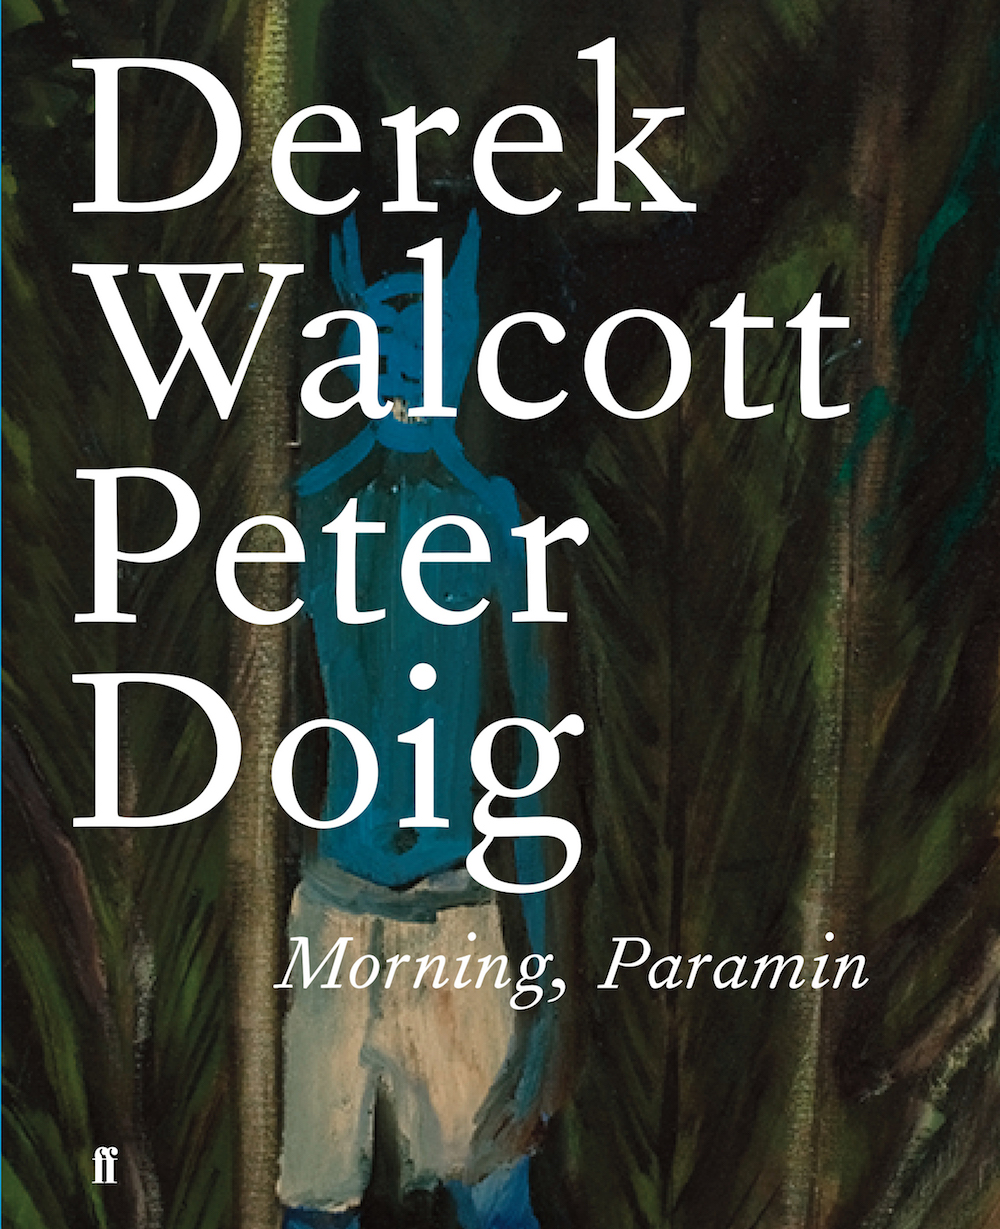 The god Derek Walcott, the Nobel-prize winning poet from St. Lucia, seems to have a lot of fun in  Morning, Paramin , marrying his poignant poems to figurative paintings by Peter Doig. A dialogue that travels from the Caribbean to Edmonton, Canada, it reveals the tender pleasures and pains of loving, observing, and aging from sandy beaches to snow-capped mountains.